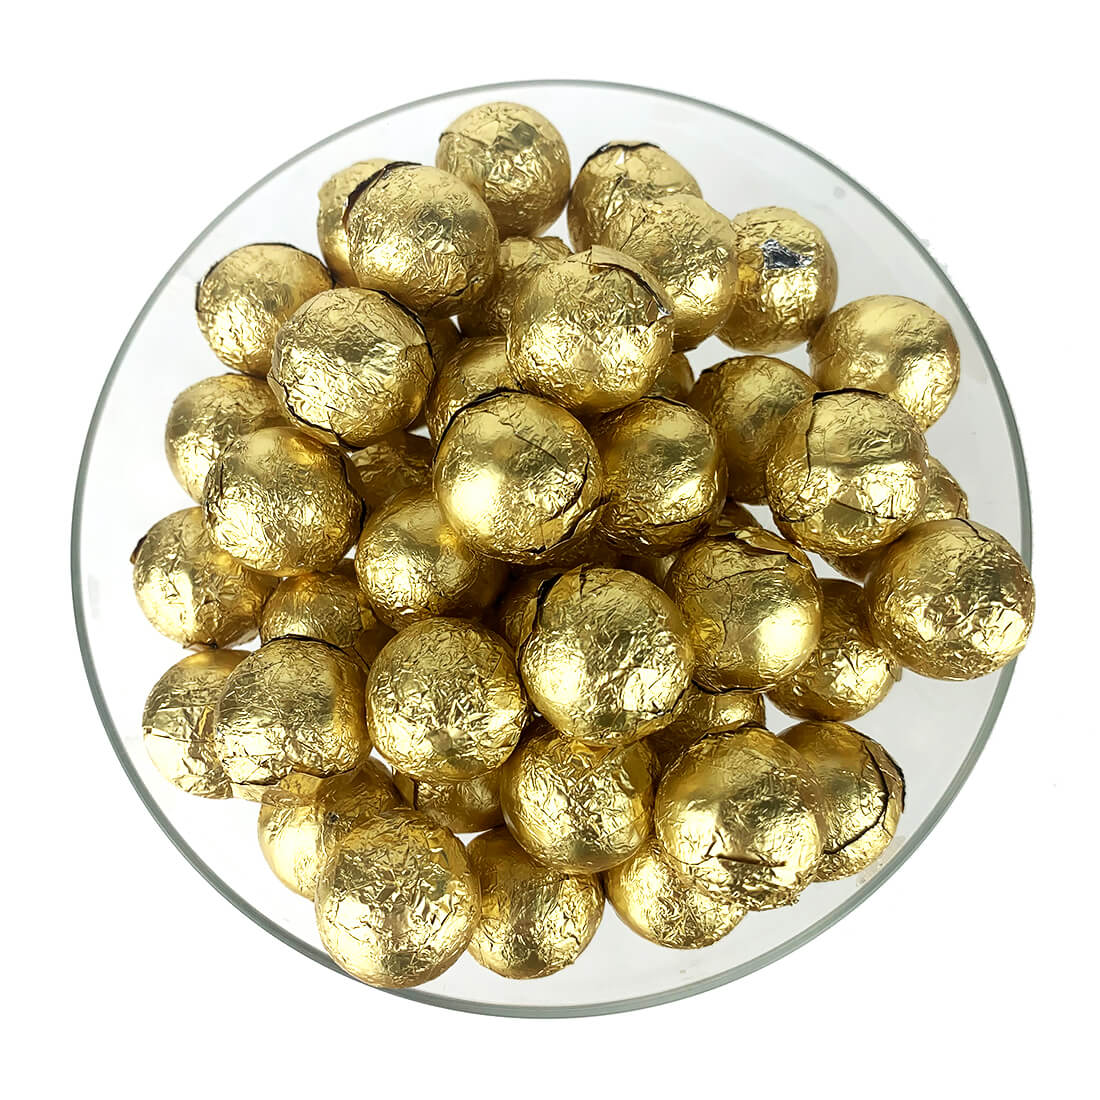 Gold Foiled Wrapped Chocolate Balls 2 lb Bag